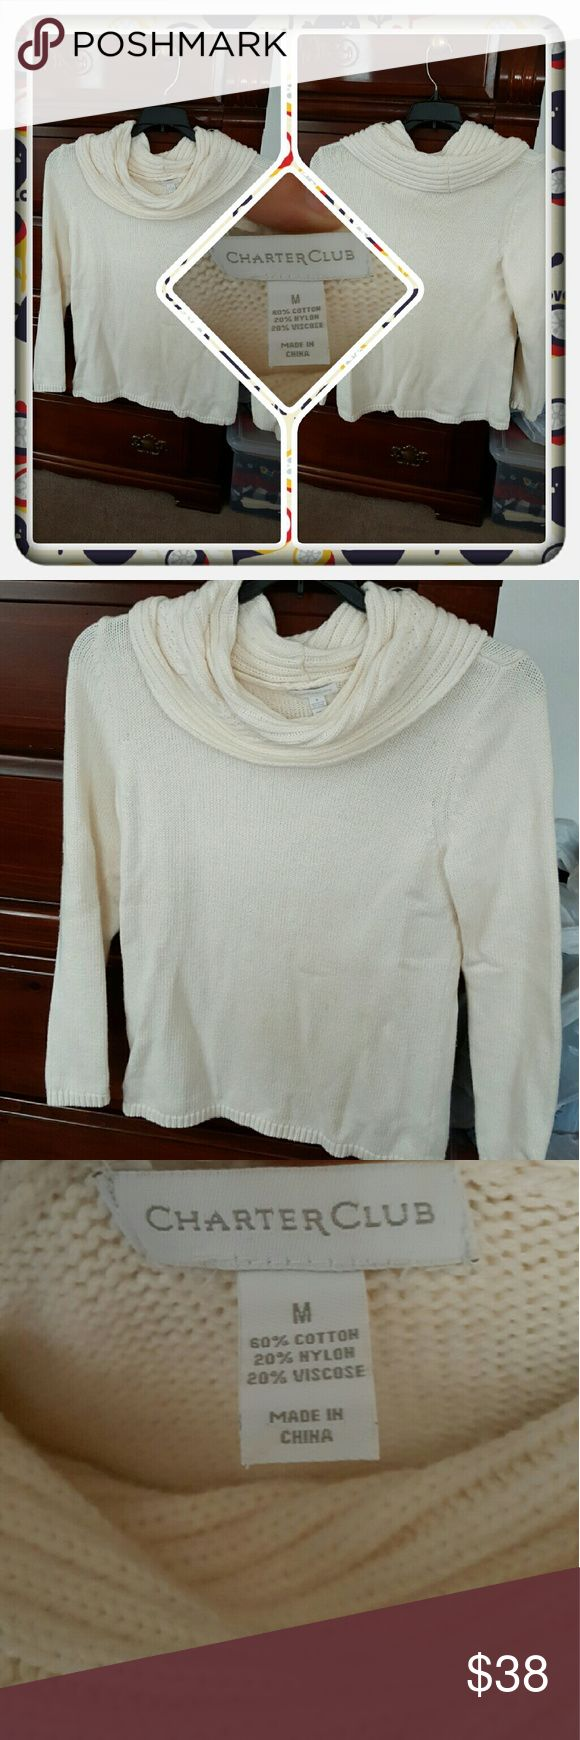 ❤ Woman's White Cowl Neck Sweater Size M ❤ Woman's Cowl Neck Sweater In A Whitish Color Size Is Medium From Charter Club. Excellent Pre Loved Condition. I'm Selling For A Friend 🚫 PAYPAL 🚫 TRADES 🚫 LOWBALLING ONLY REASONABLE FAIR OFFERS ❤ Charter Club Sweaters Cowl & Turtlenecks